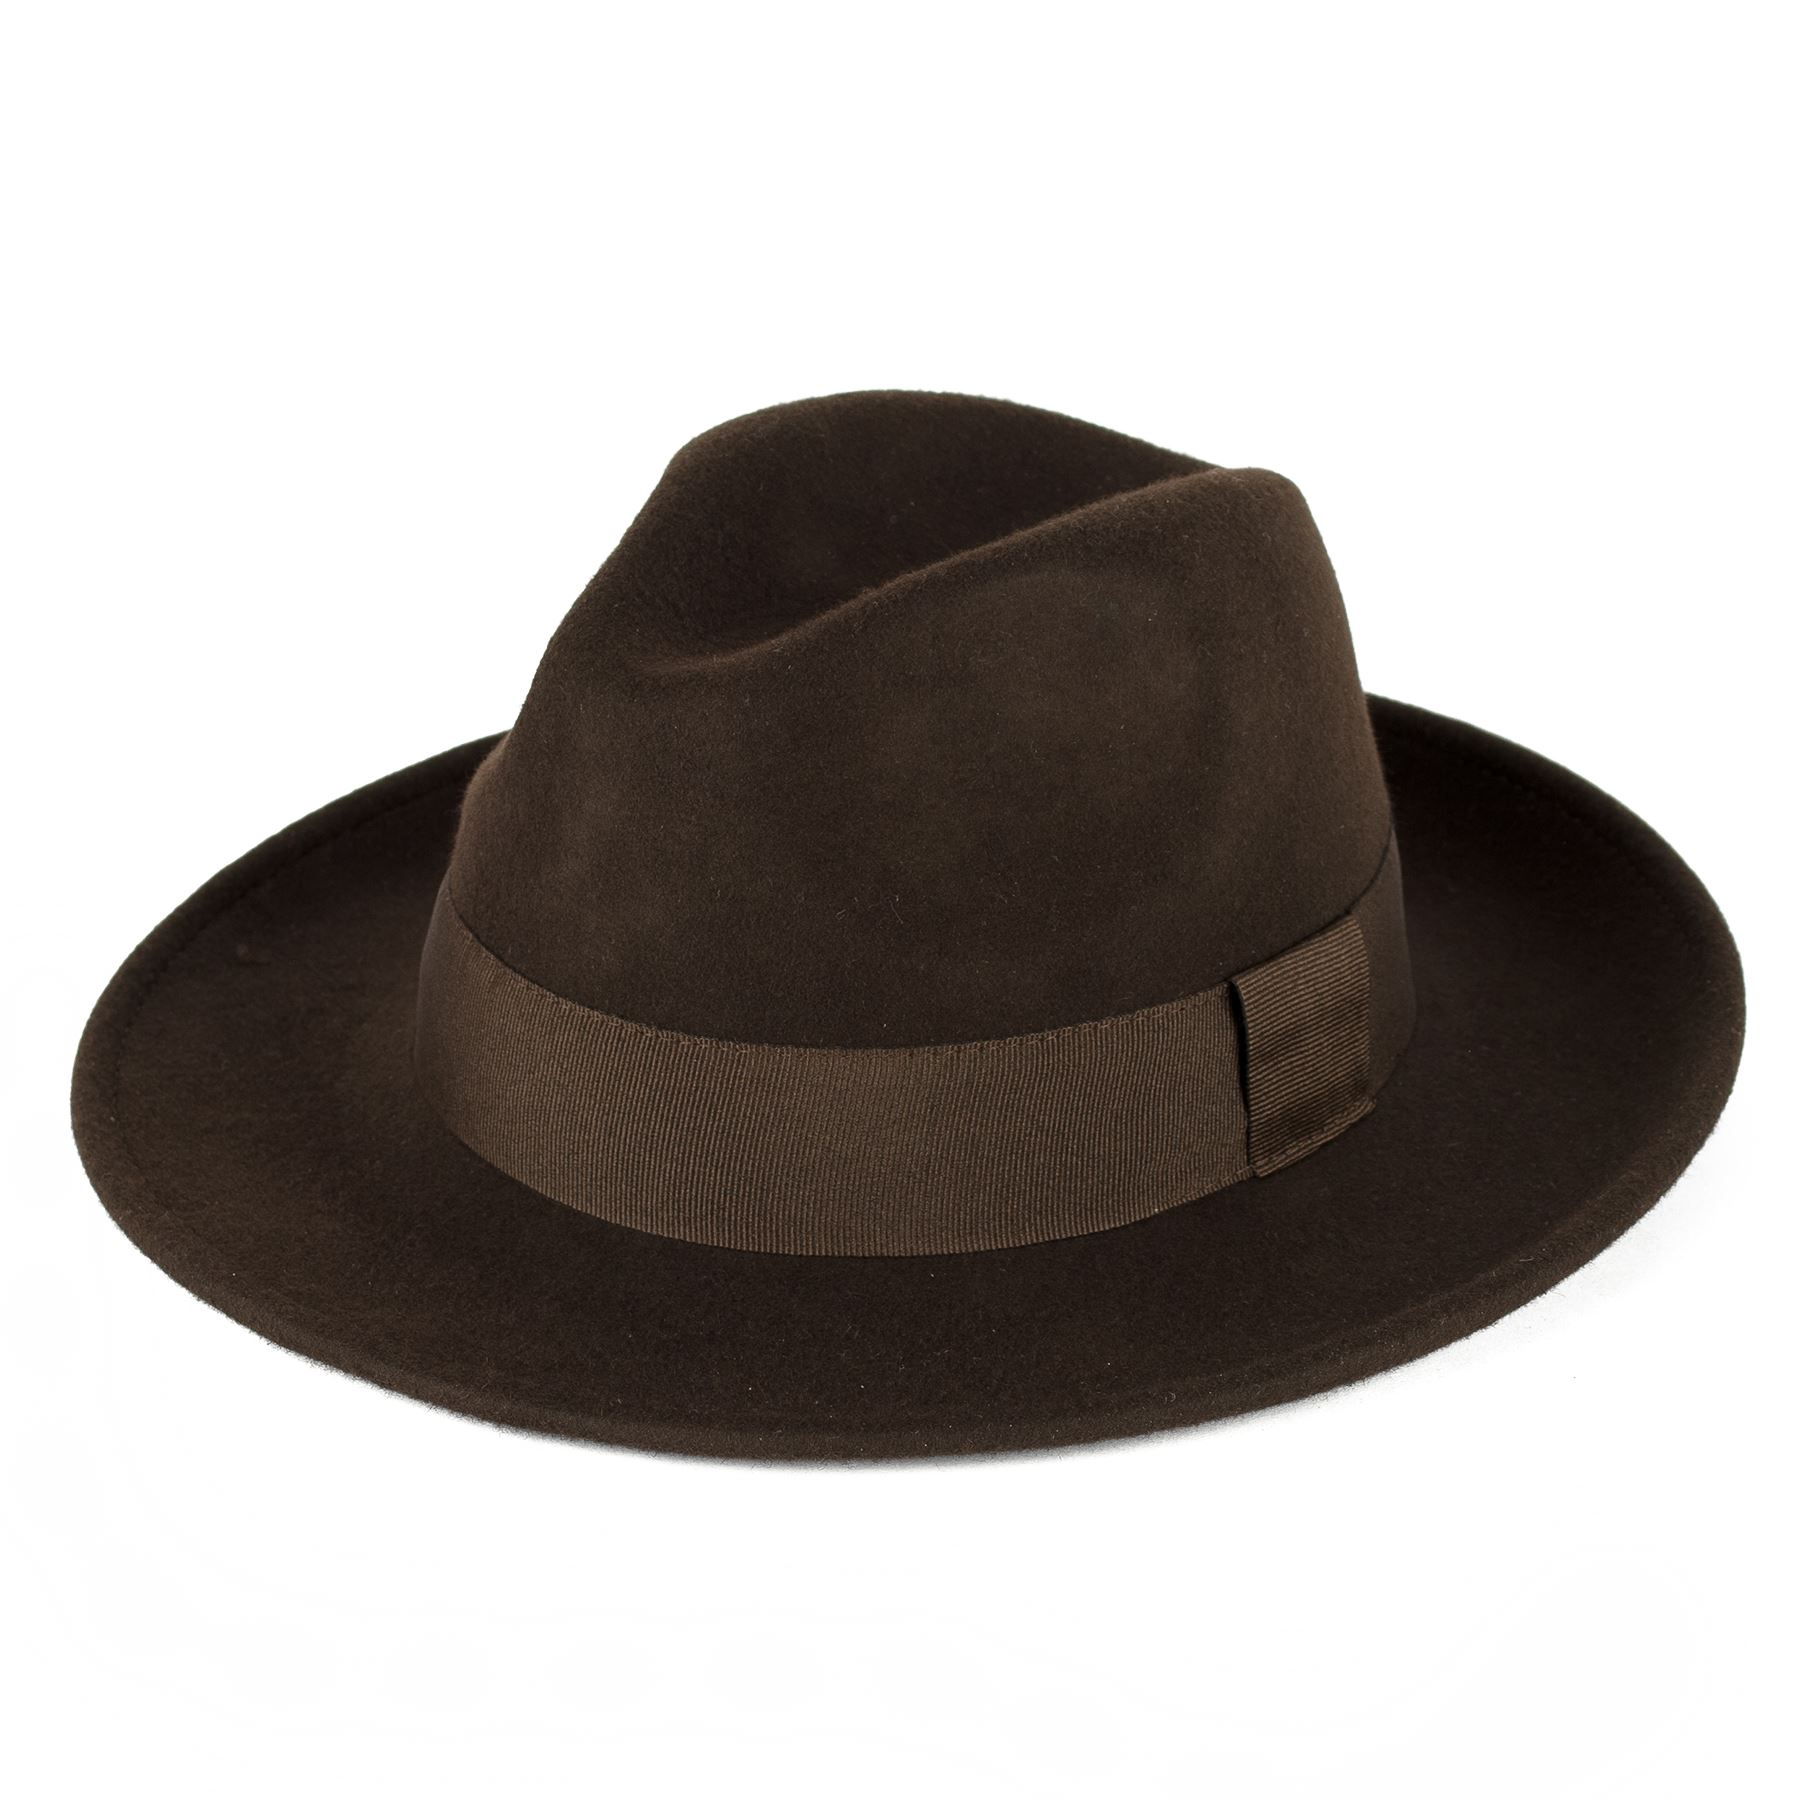 Fedora Men's Hats: Shop our collection to find the right style for you from skytmeg.cf Your Online Hats Store! Get 5% in rewards with Club O!